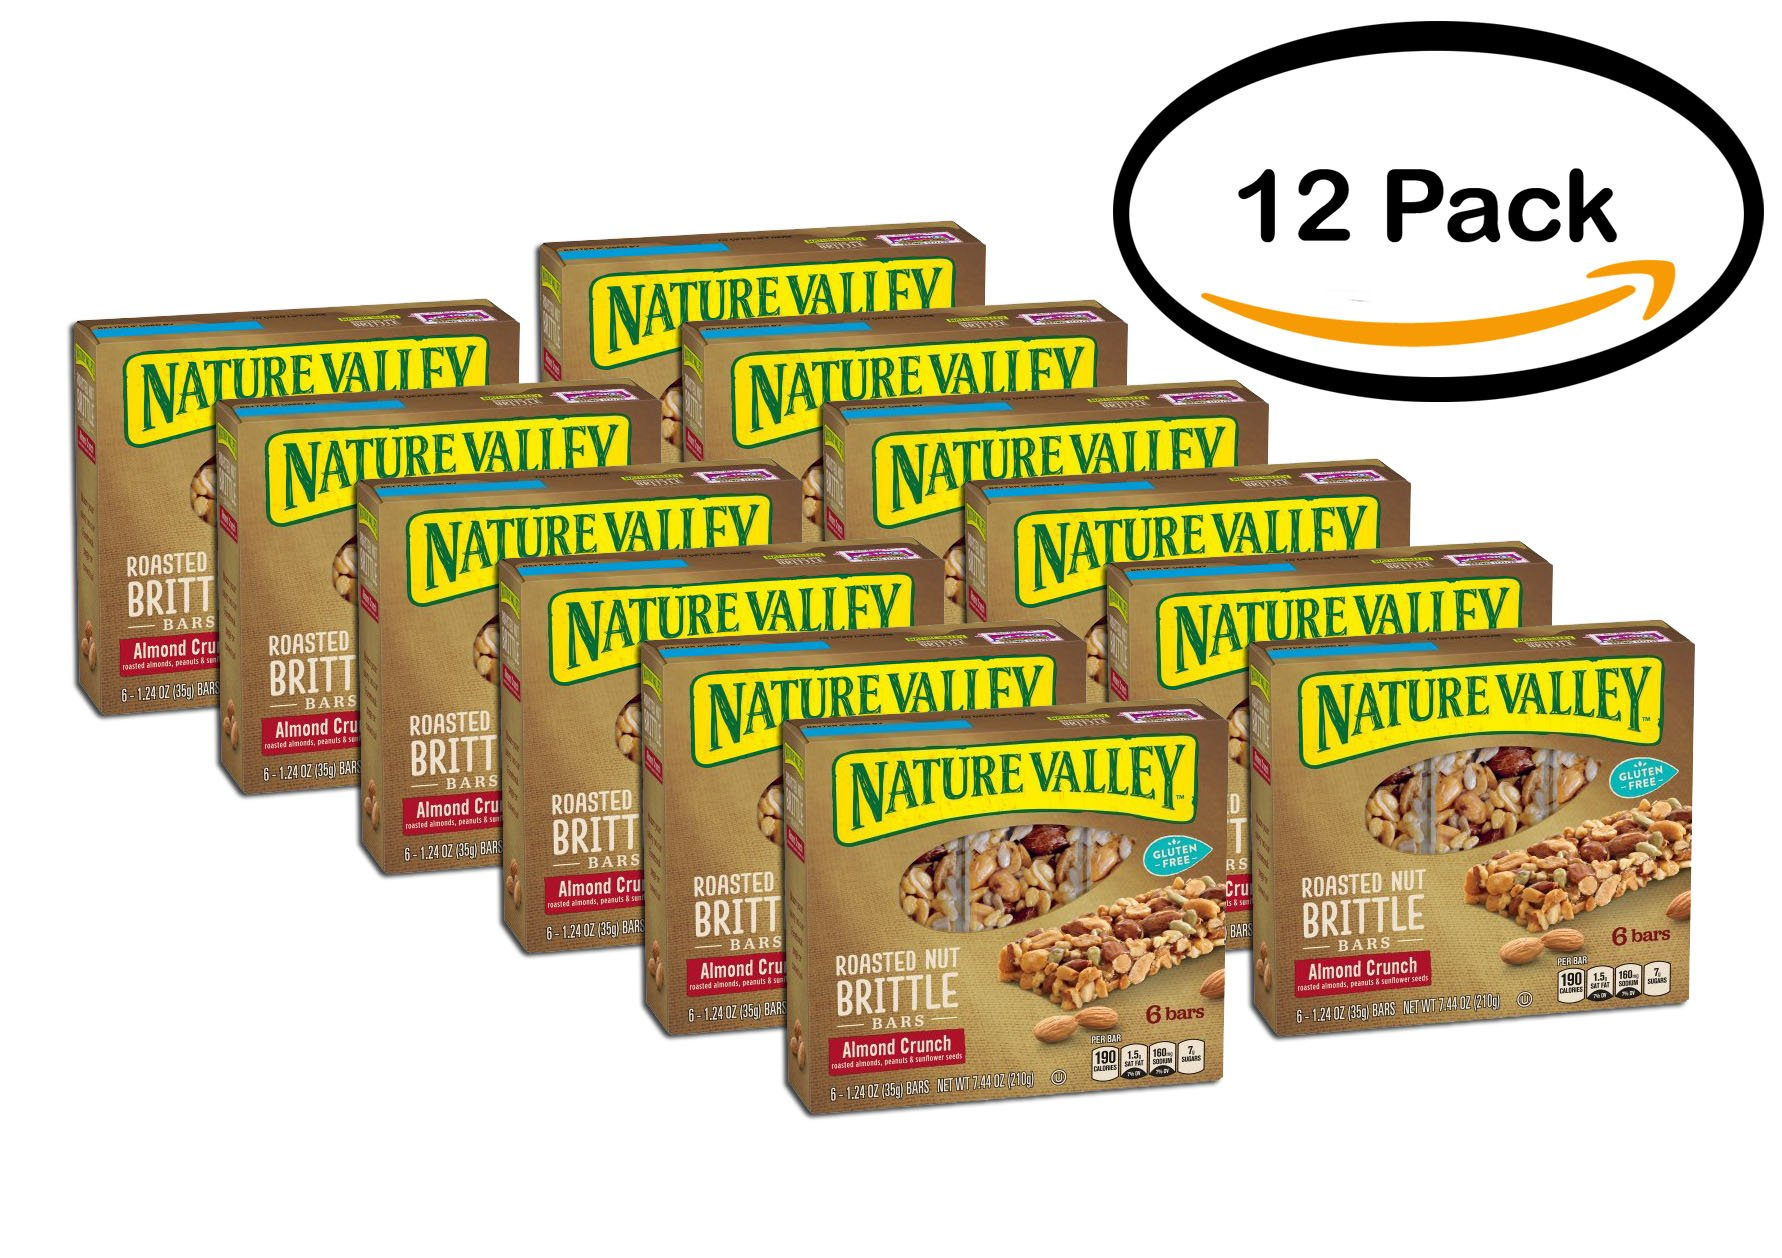 PACK OF 12 - Nature Valley Almond Crunch Roasted Nut Brittle Bars 6 ct Box